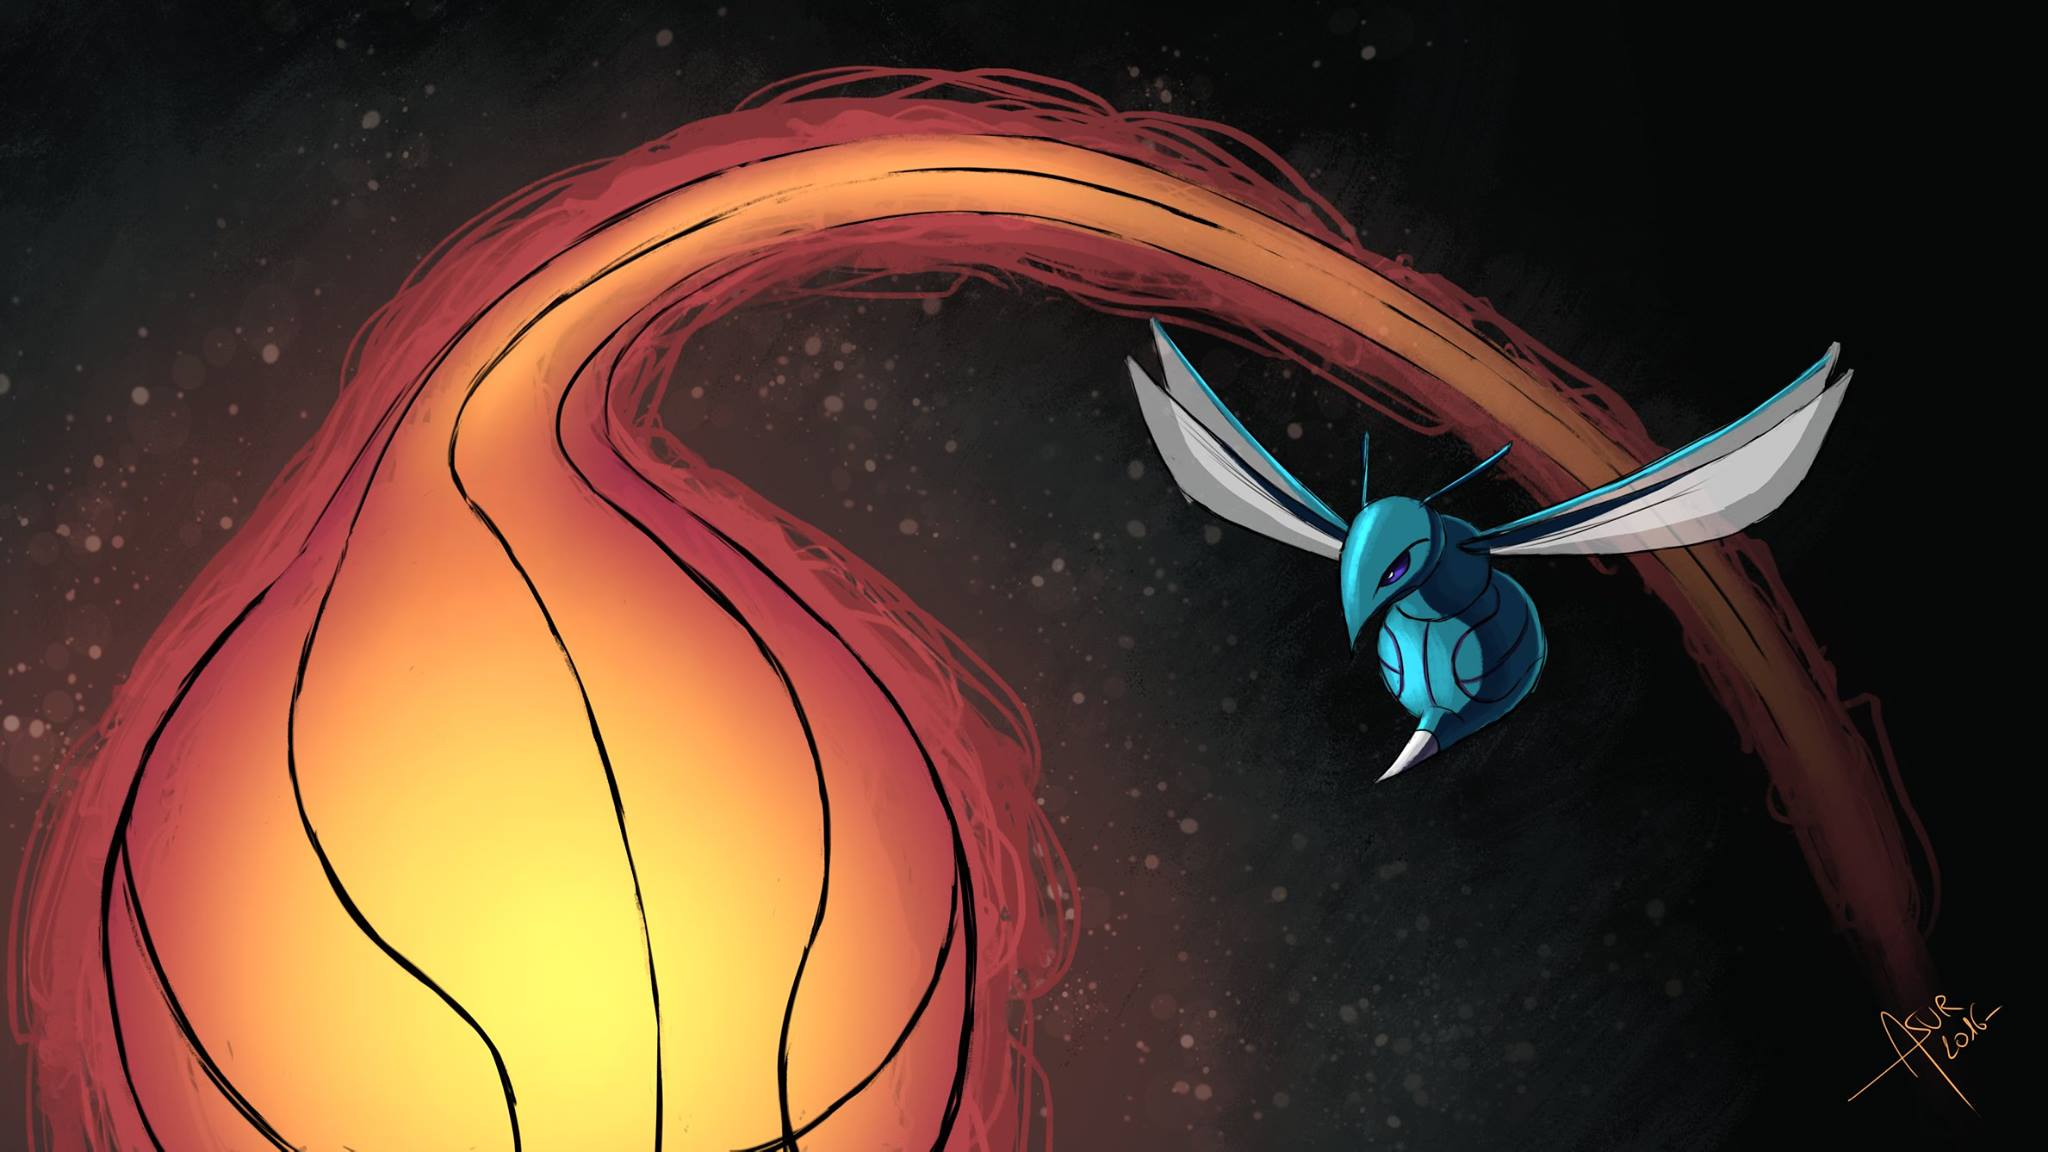 Heat - Hornets (Source : Asur Illustrations)